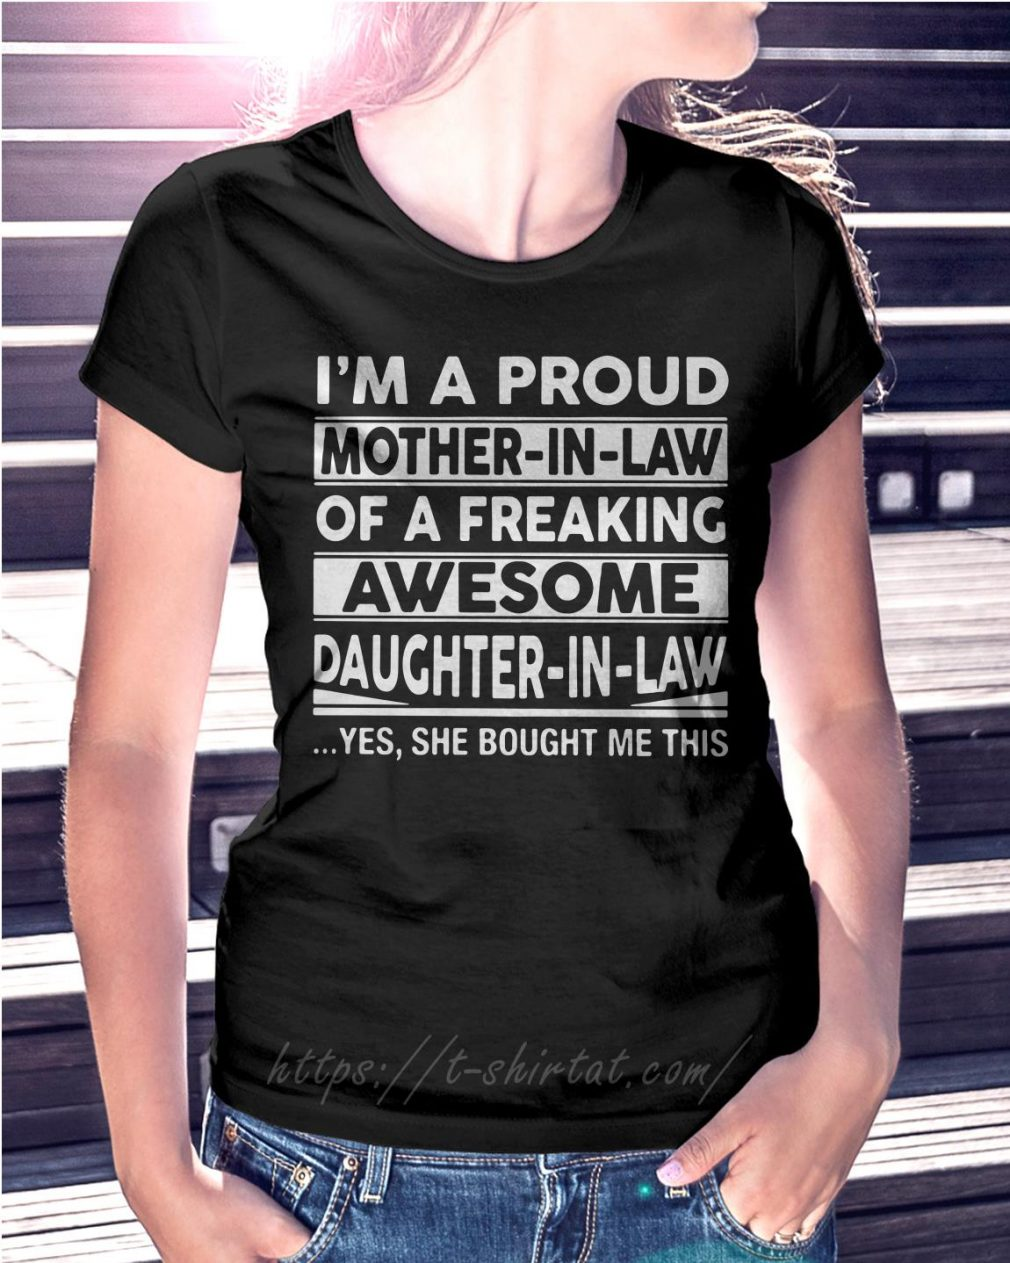 I'm a proud mother in law of a freaking awesome daughter in law T-shirt